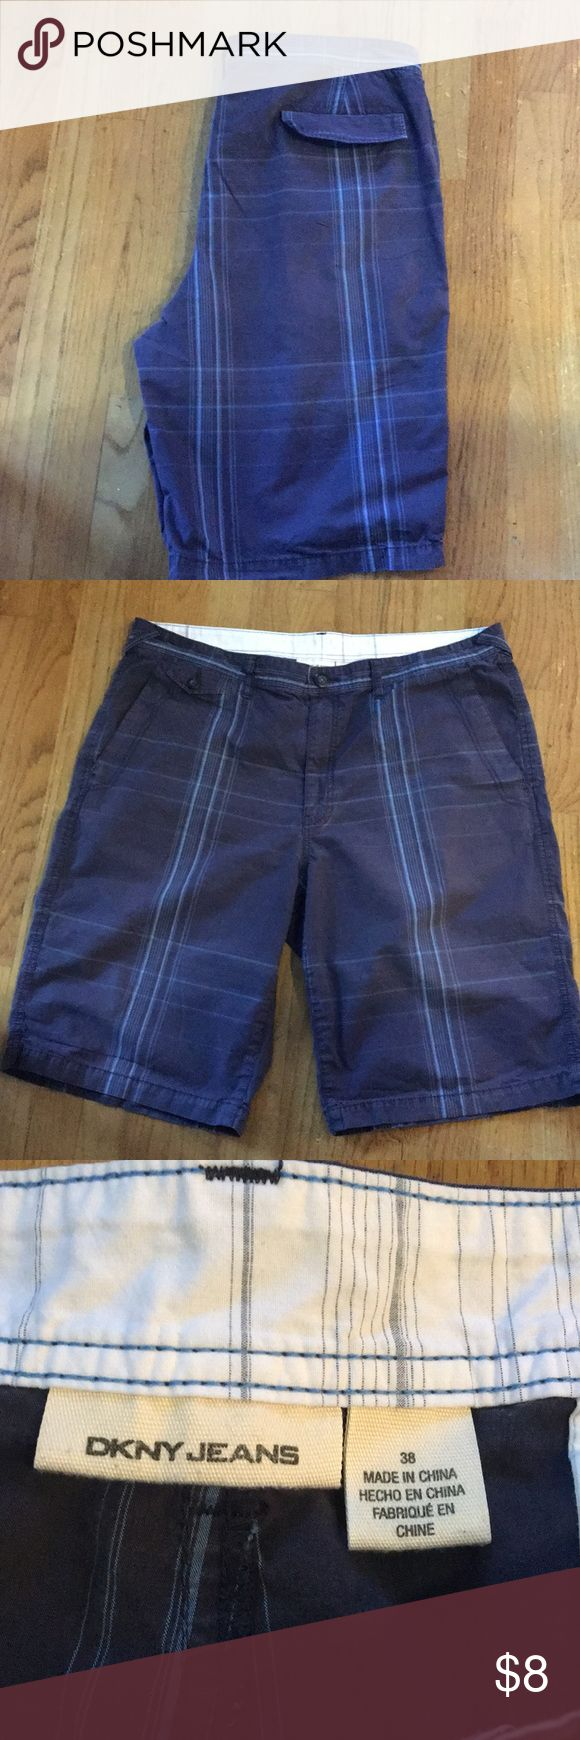 DKNY men's blue shorts size 38 DKNY men's blue shorts in size 38. Color lighter than pictures. In good condition! Dkny Shorts Flat Front